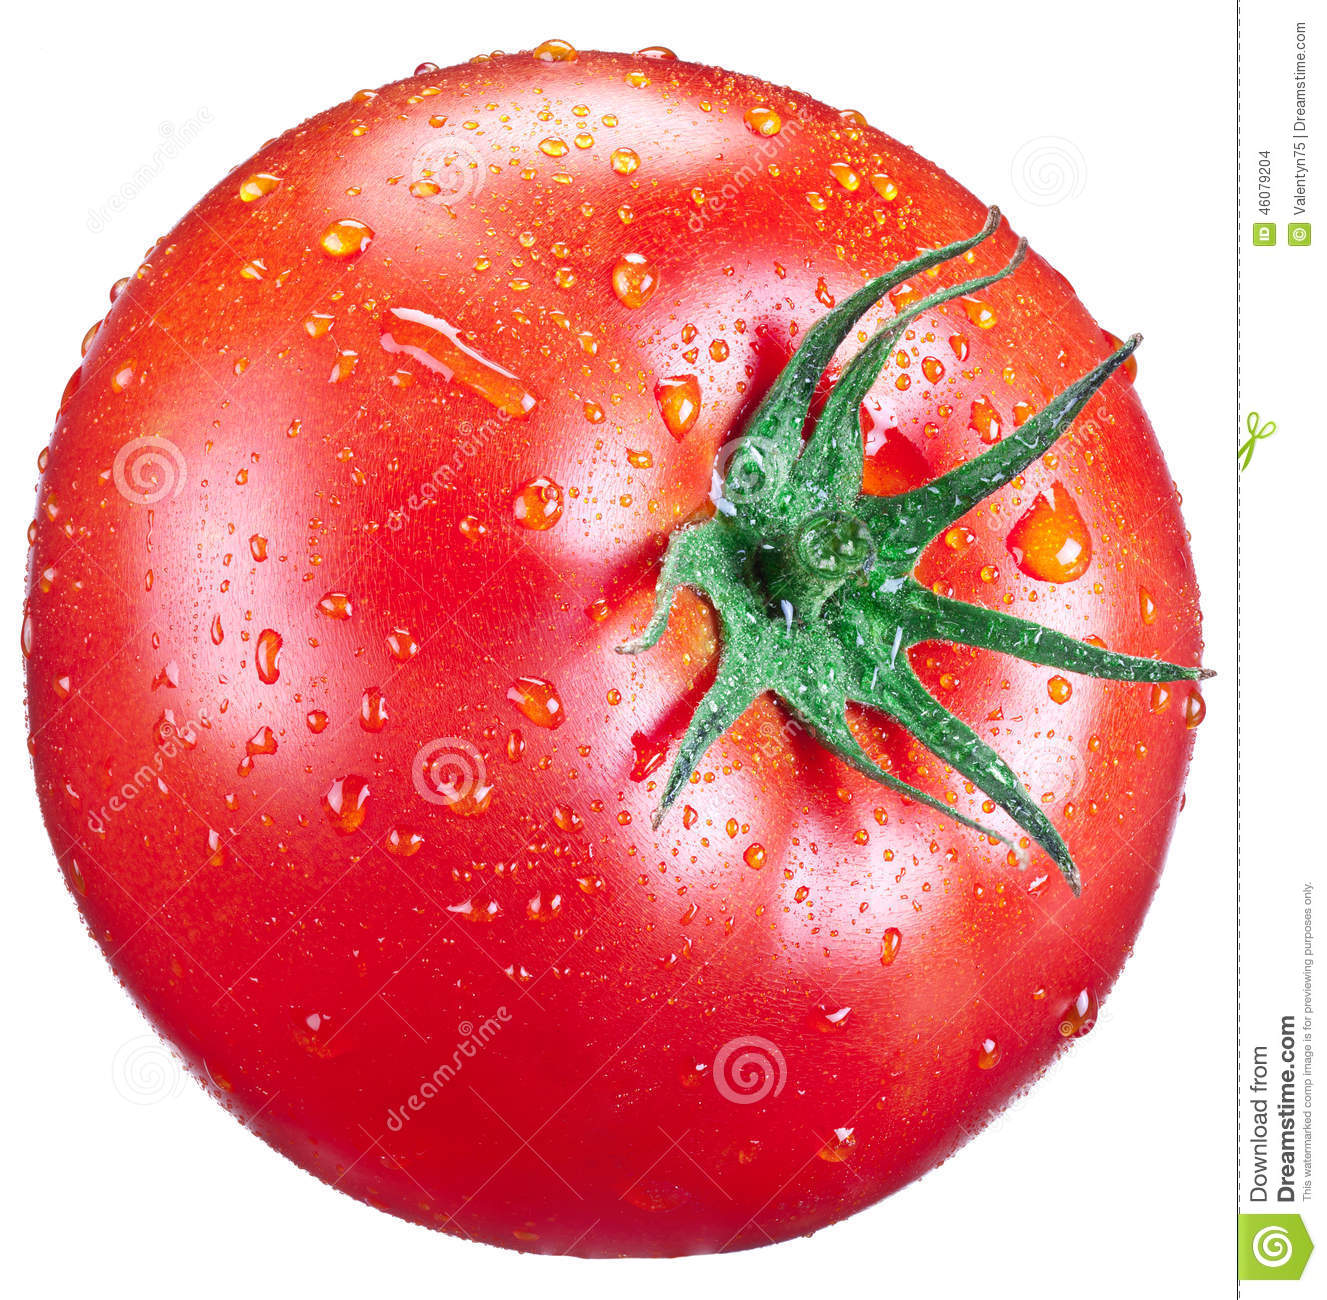 Download Tomato with water drops. stock photo. Image of water - 46079204